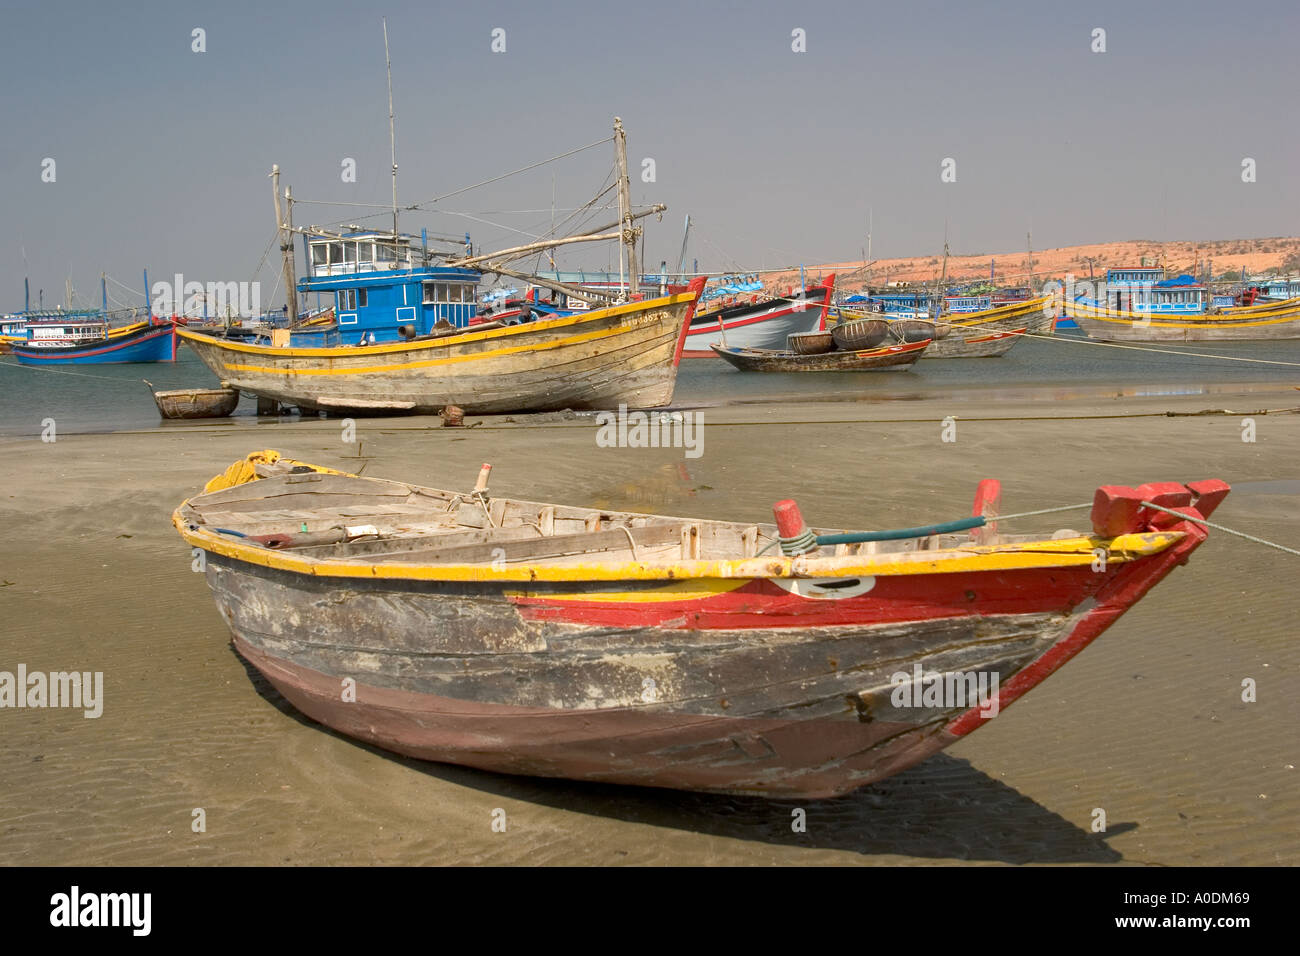 Vietnam Mui Ne fishing village small boat with painted eye at waters edge Stock Photo